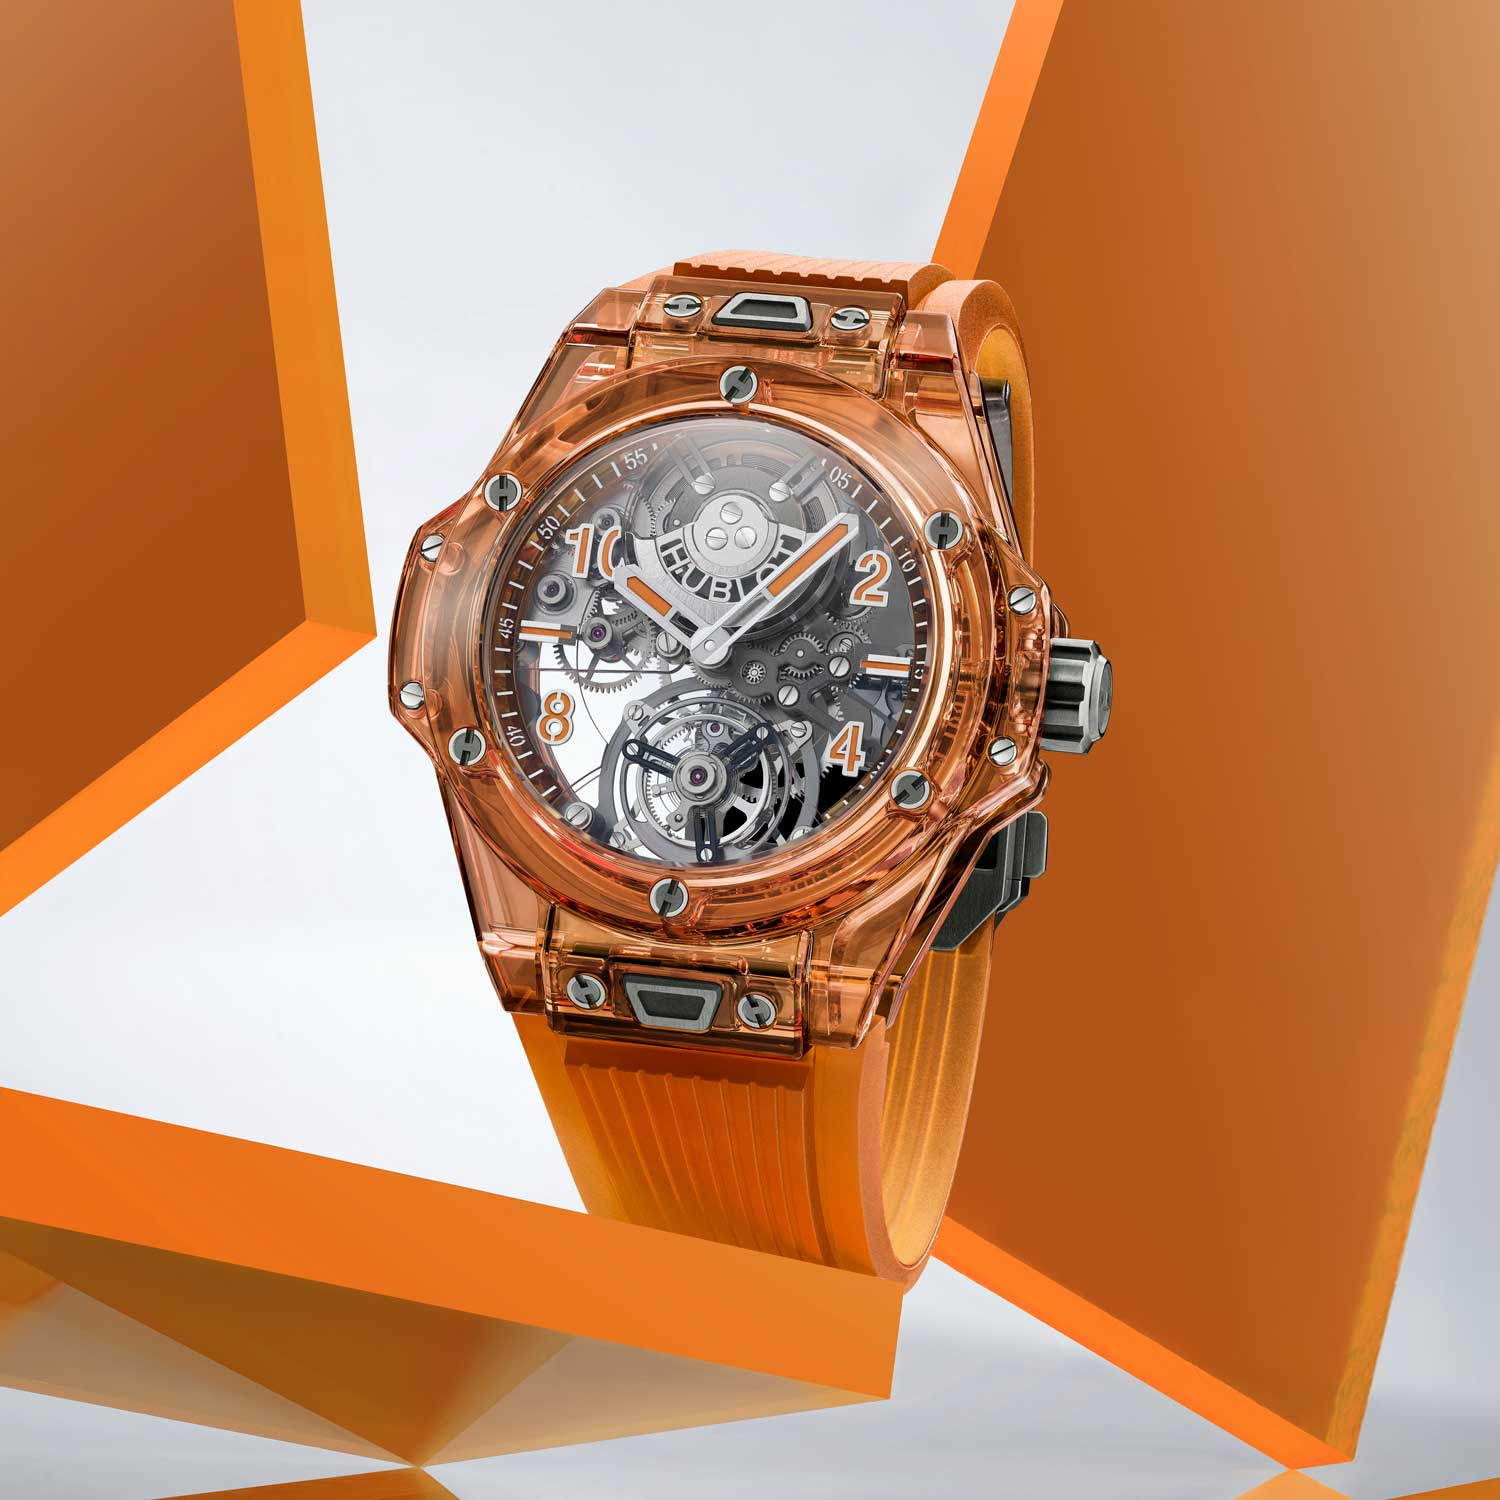 Hublot's orange sapphire is a world first for a material that is through-tinted and is achieved by the use of titanium and chromium in a top-secret manufacturing process